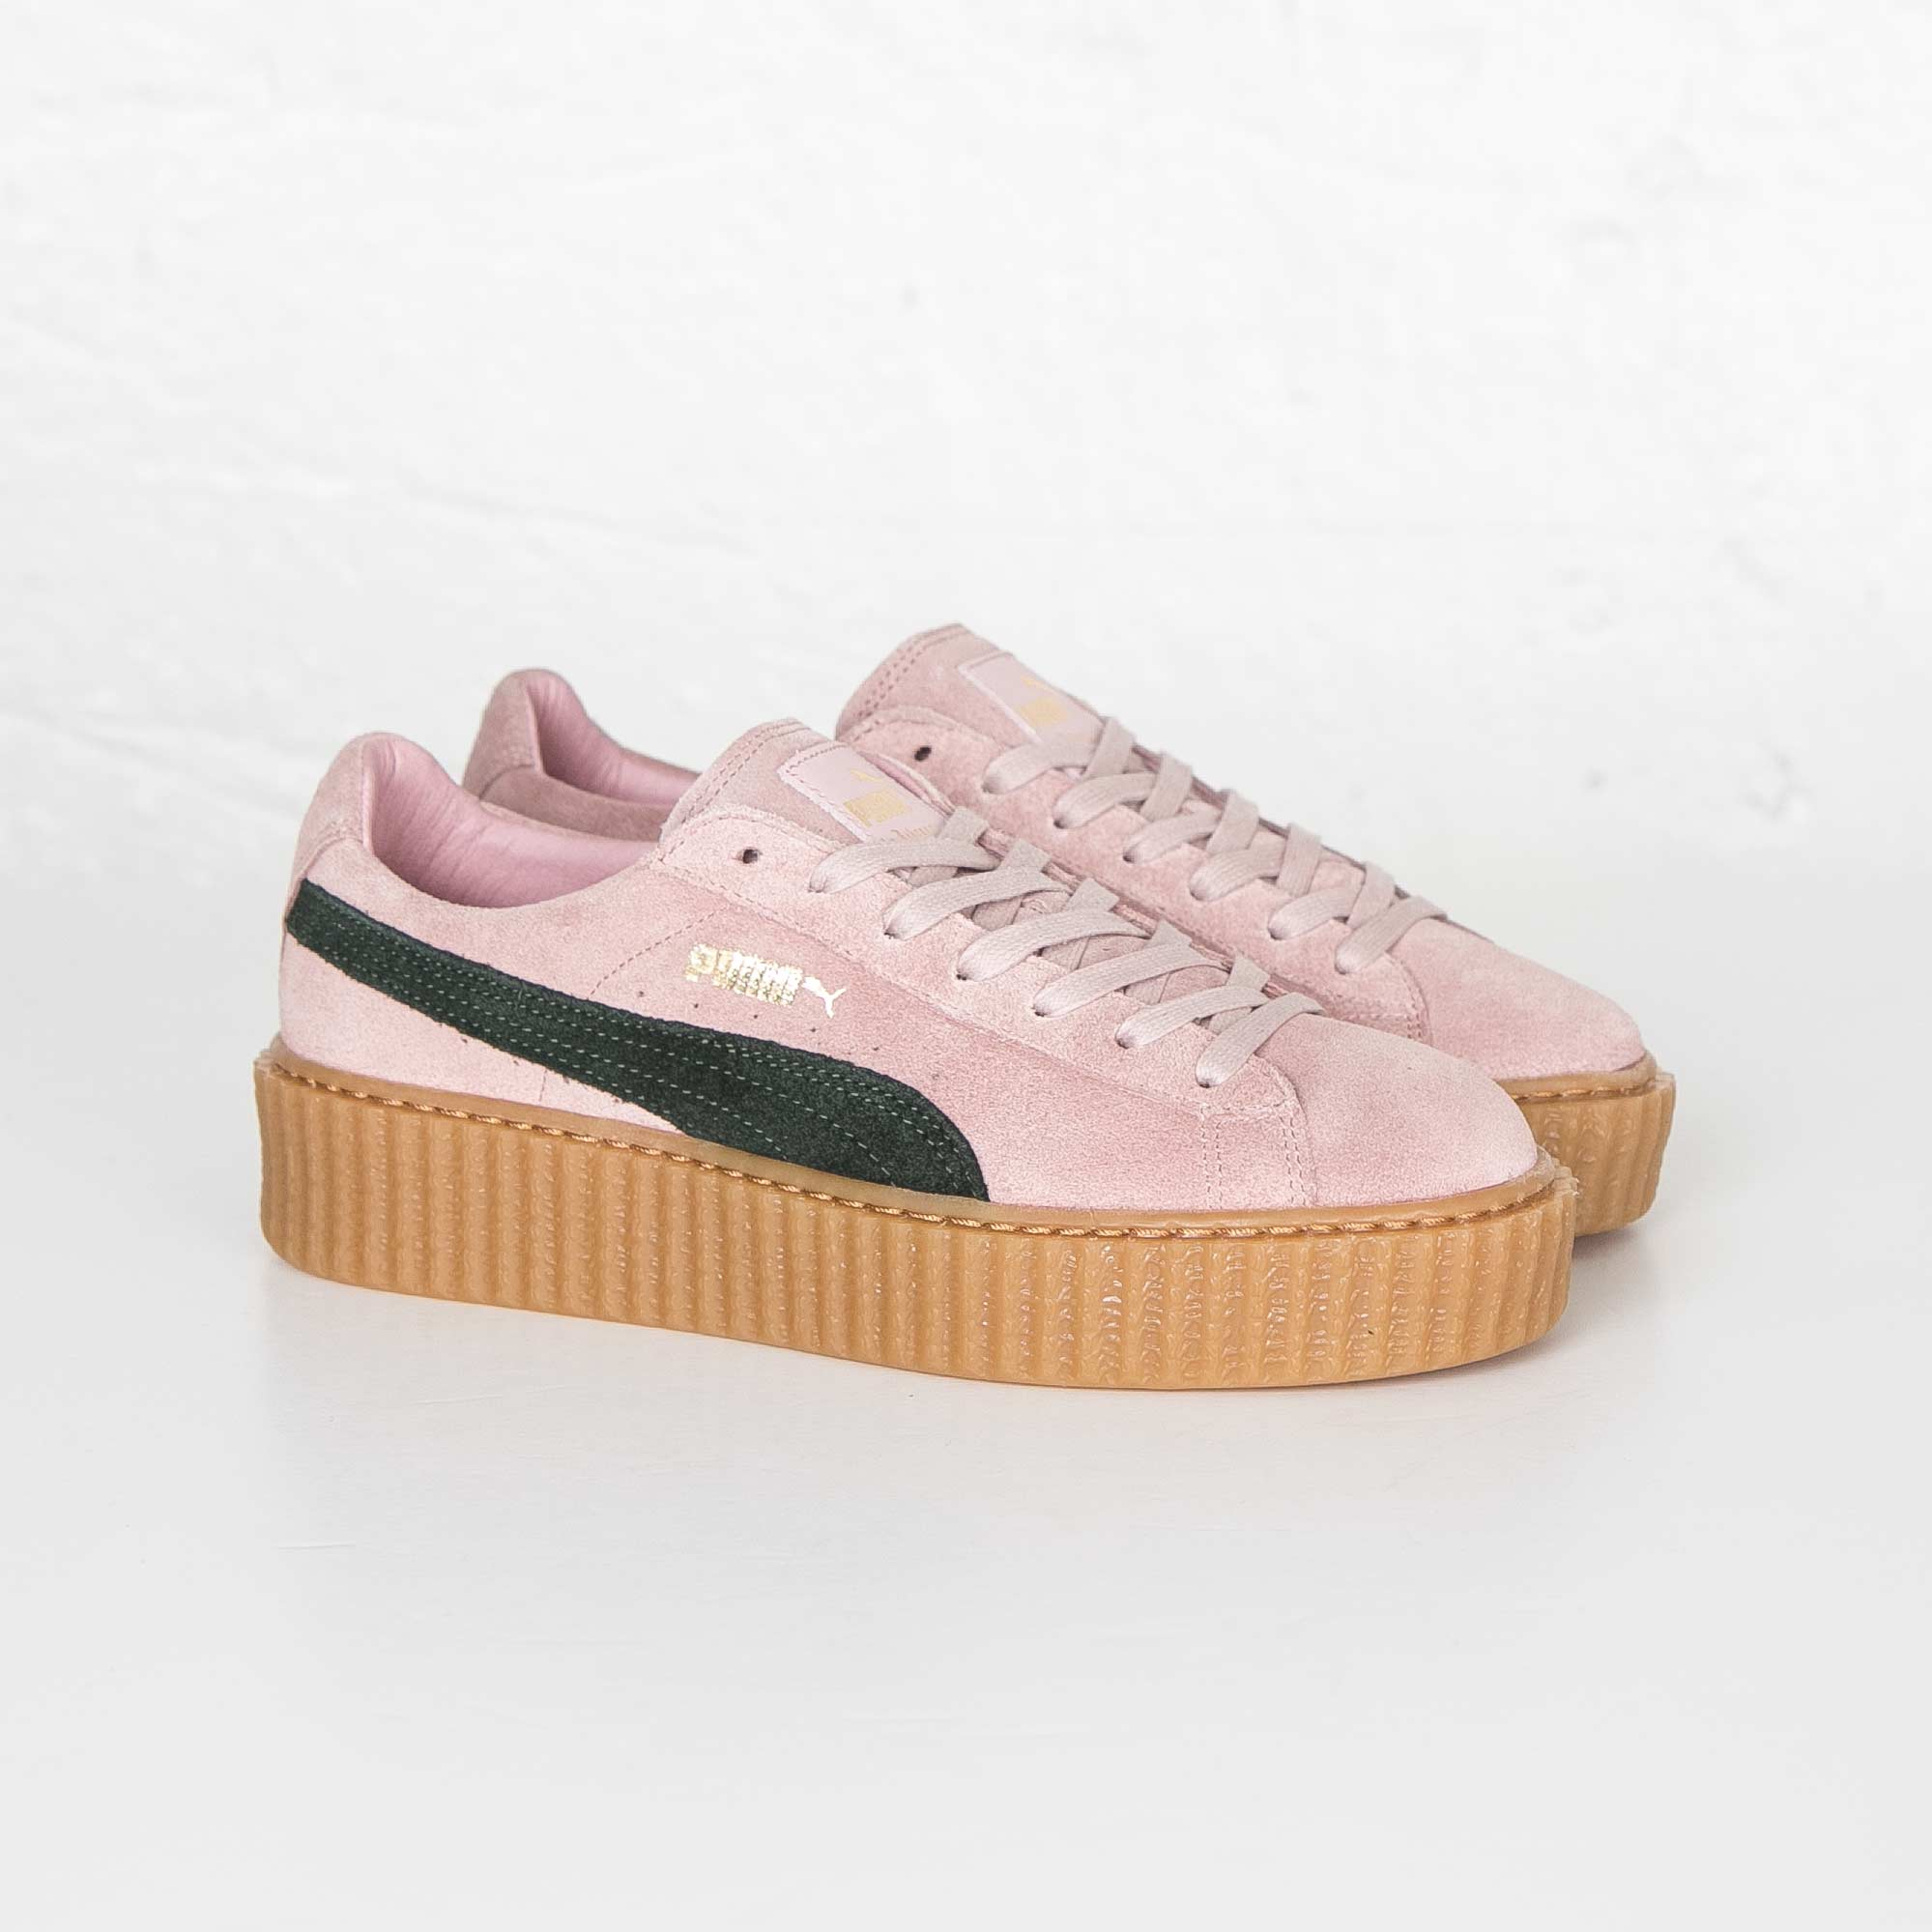 promo code 5a07b e0b38 Puma Suede Creepers - 361005-04 - Sneakersnstuff | sneakers ...